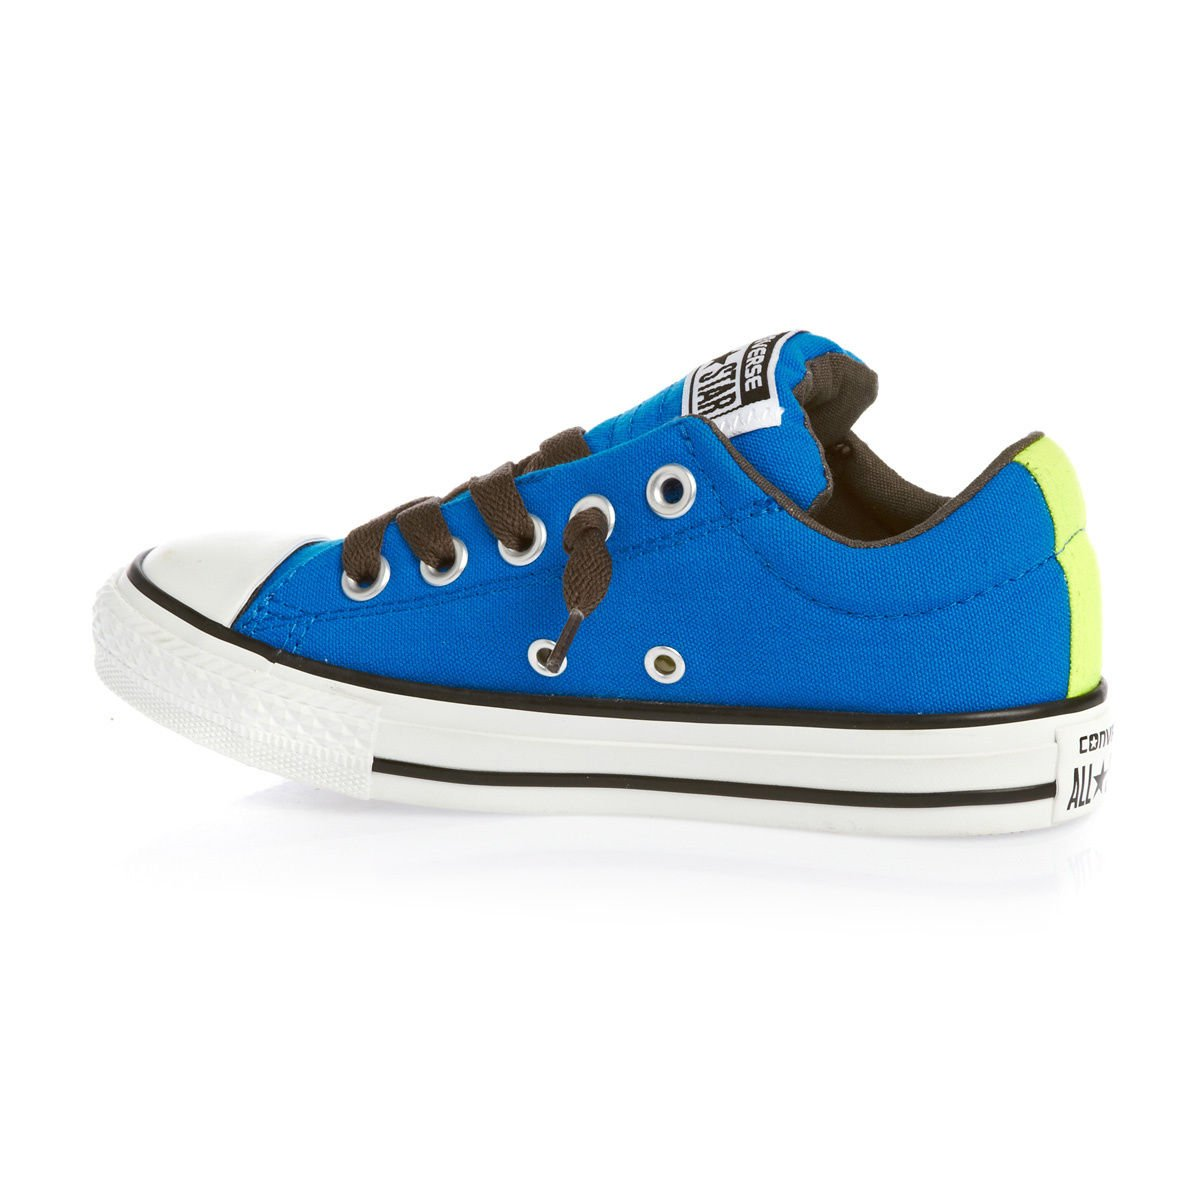 b643f42a9f2974 Converse Chuck Taylor All Star Street Shoes - Electric Blue Lemonade  Electric Yellow  Amazon.co.uk  Shoes   Bags